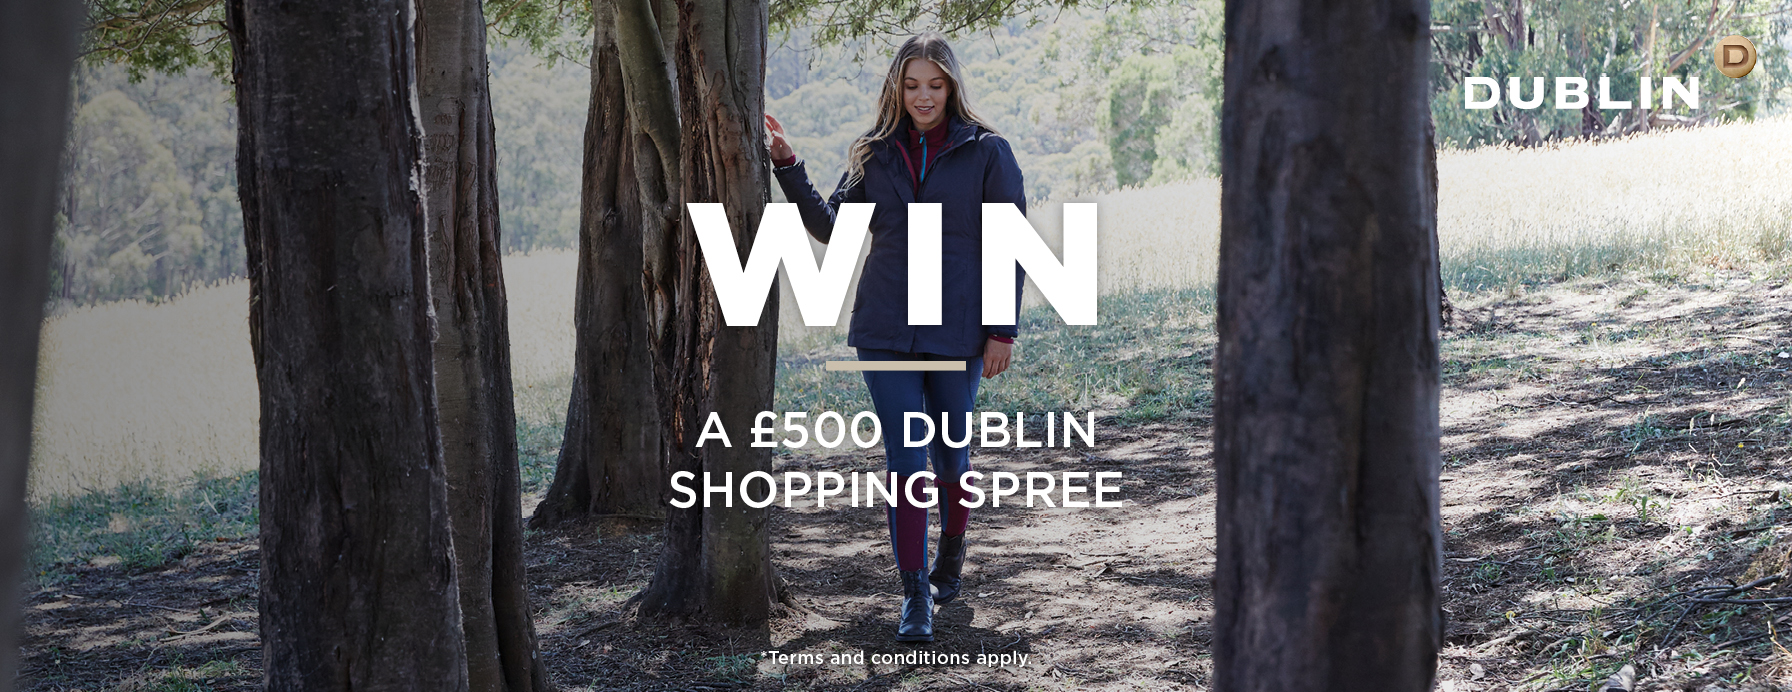 win a pair of Dublin arena shoes